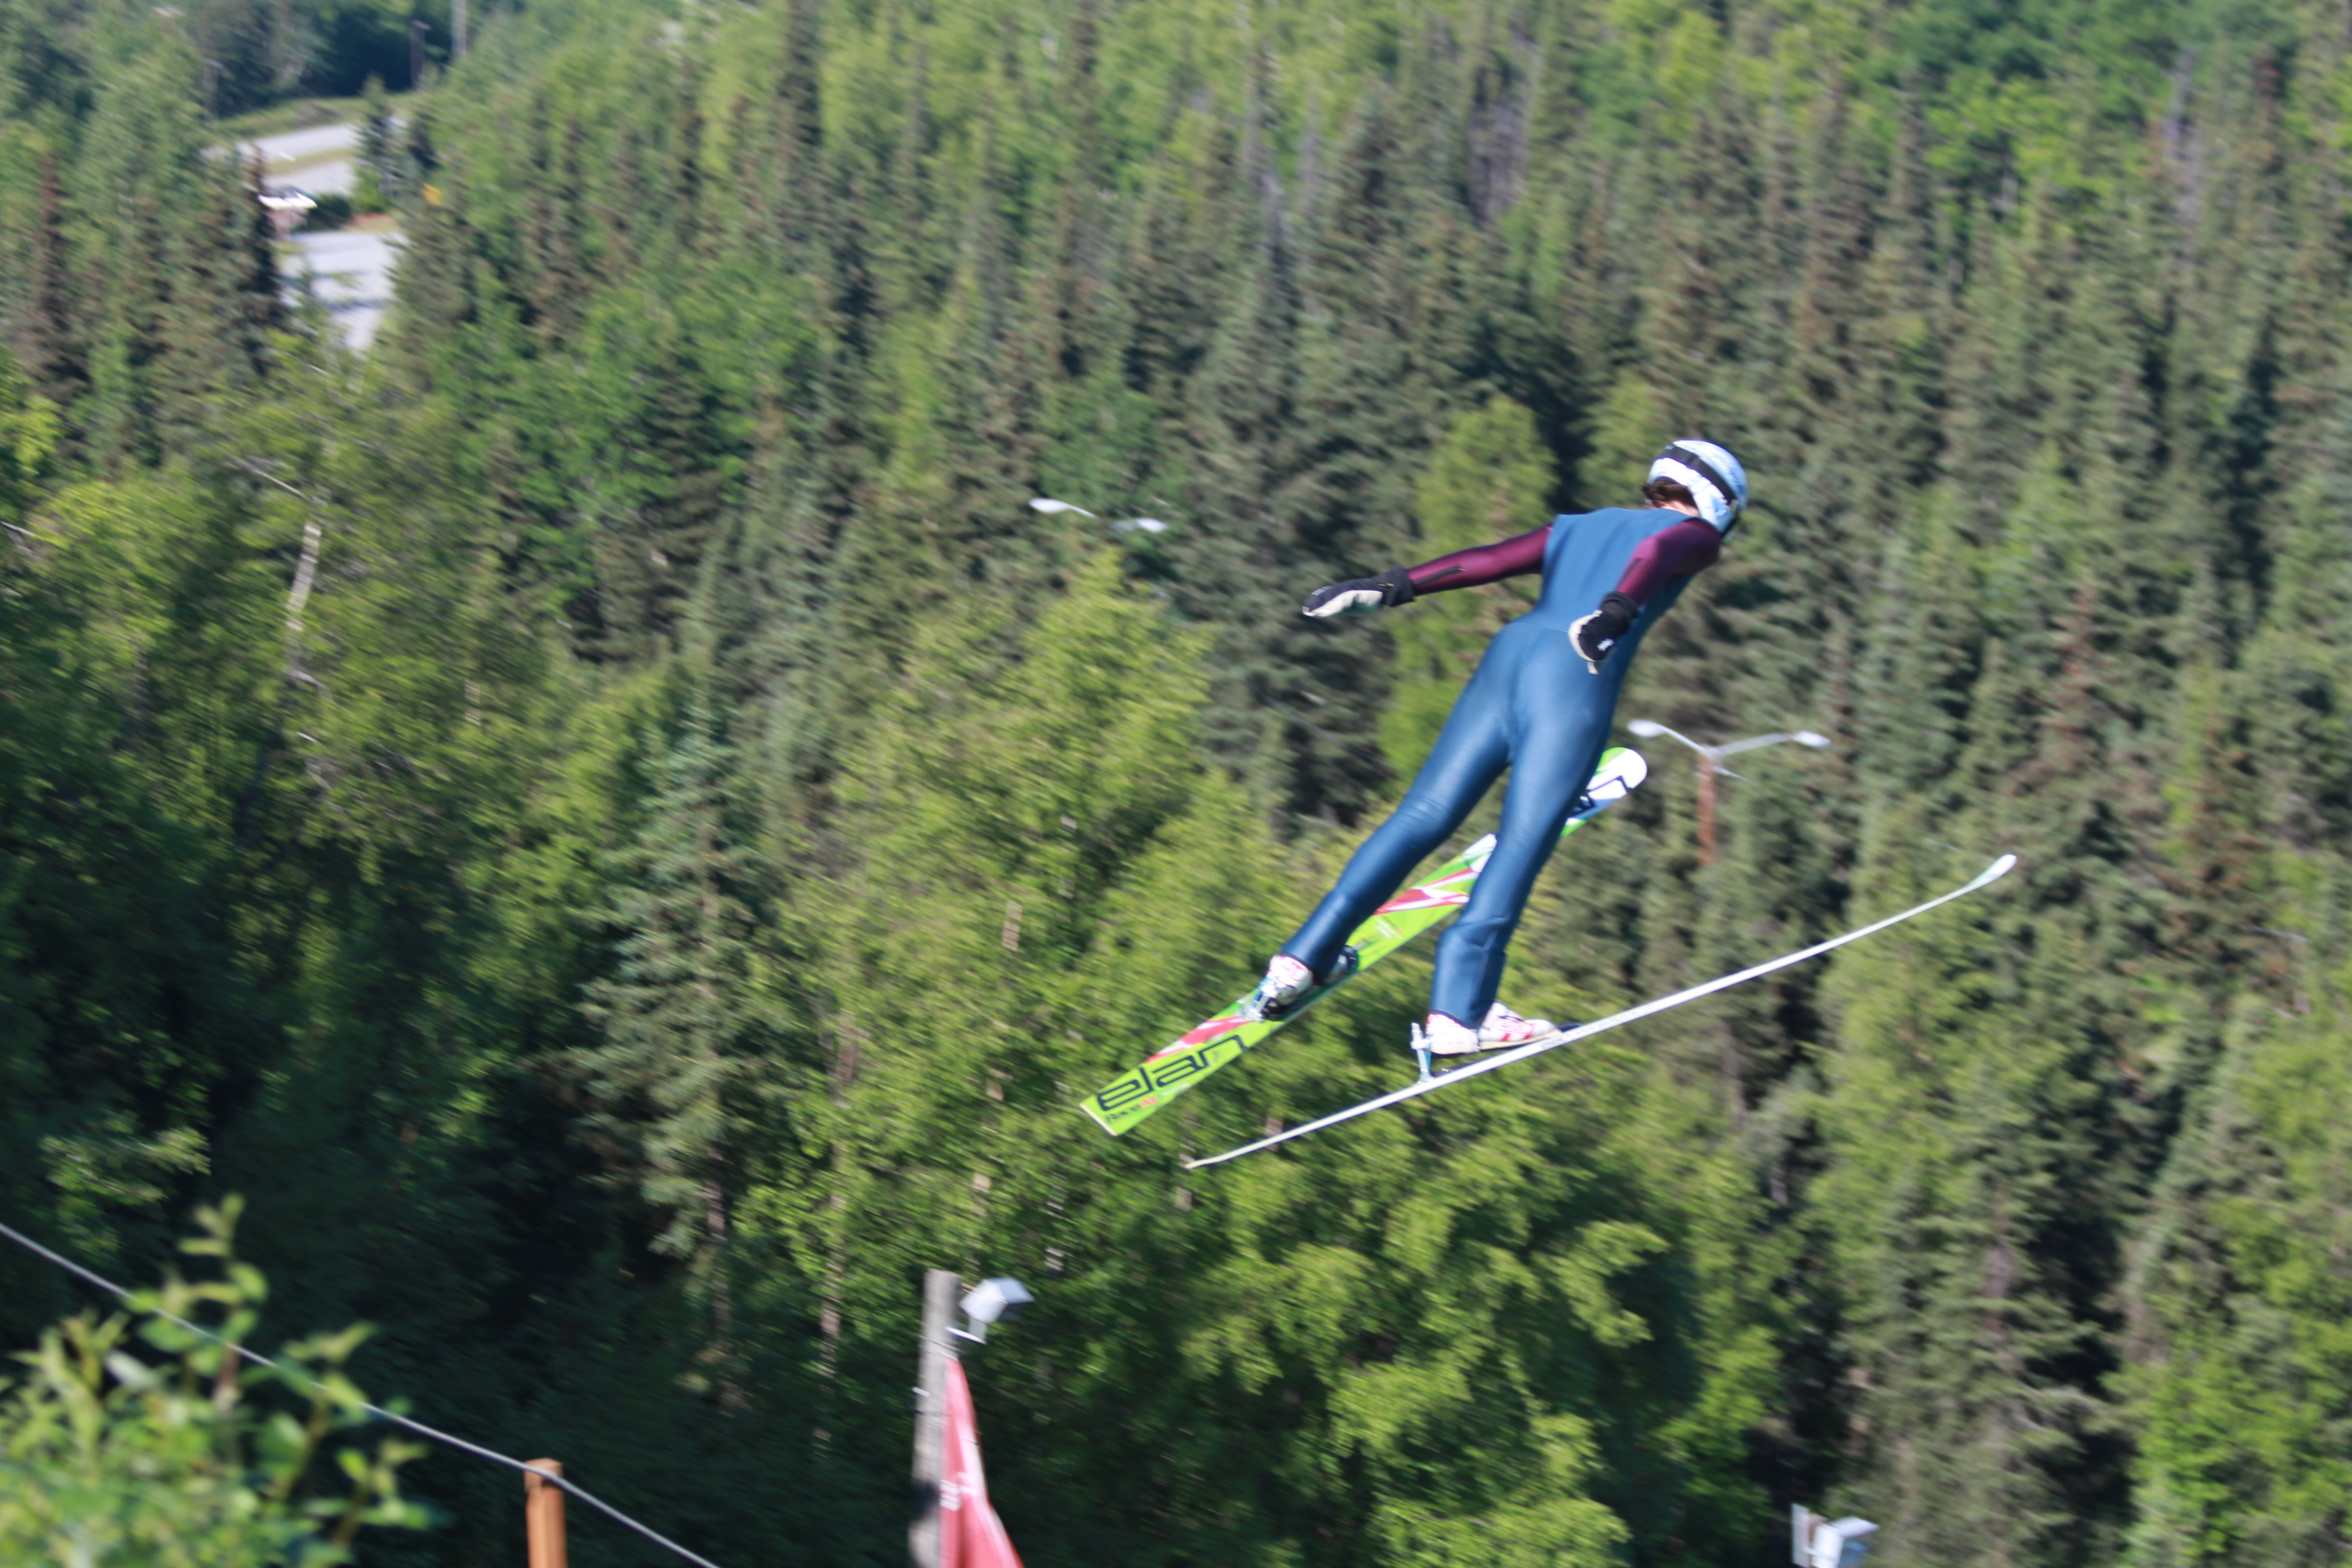 One of the young members of the Nordic Ski Association of Anchorage flies off of one of the new summer ski jumps. The Hilltop ski jump facility is the first of its kind to allow for ski jumping in the summer in Alaska. (Photo by Wesley Early, Alaska Public Media - Anchorage)